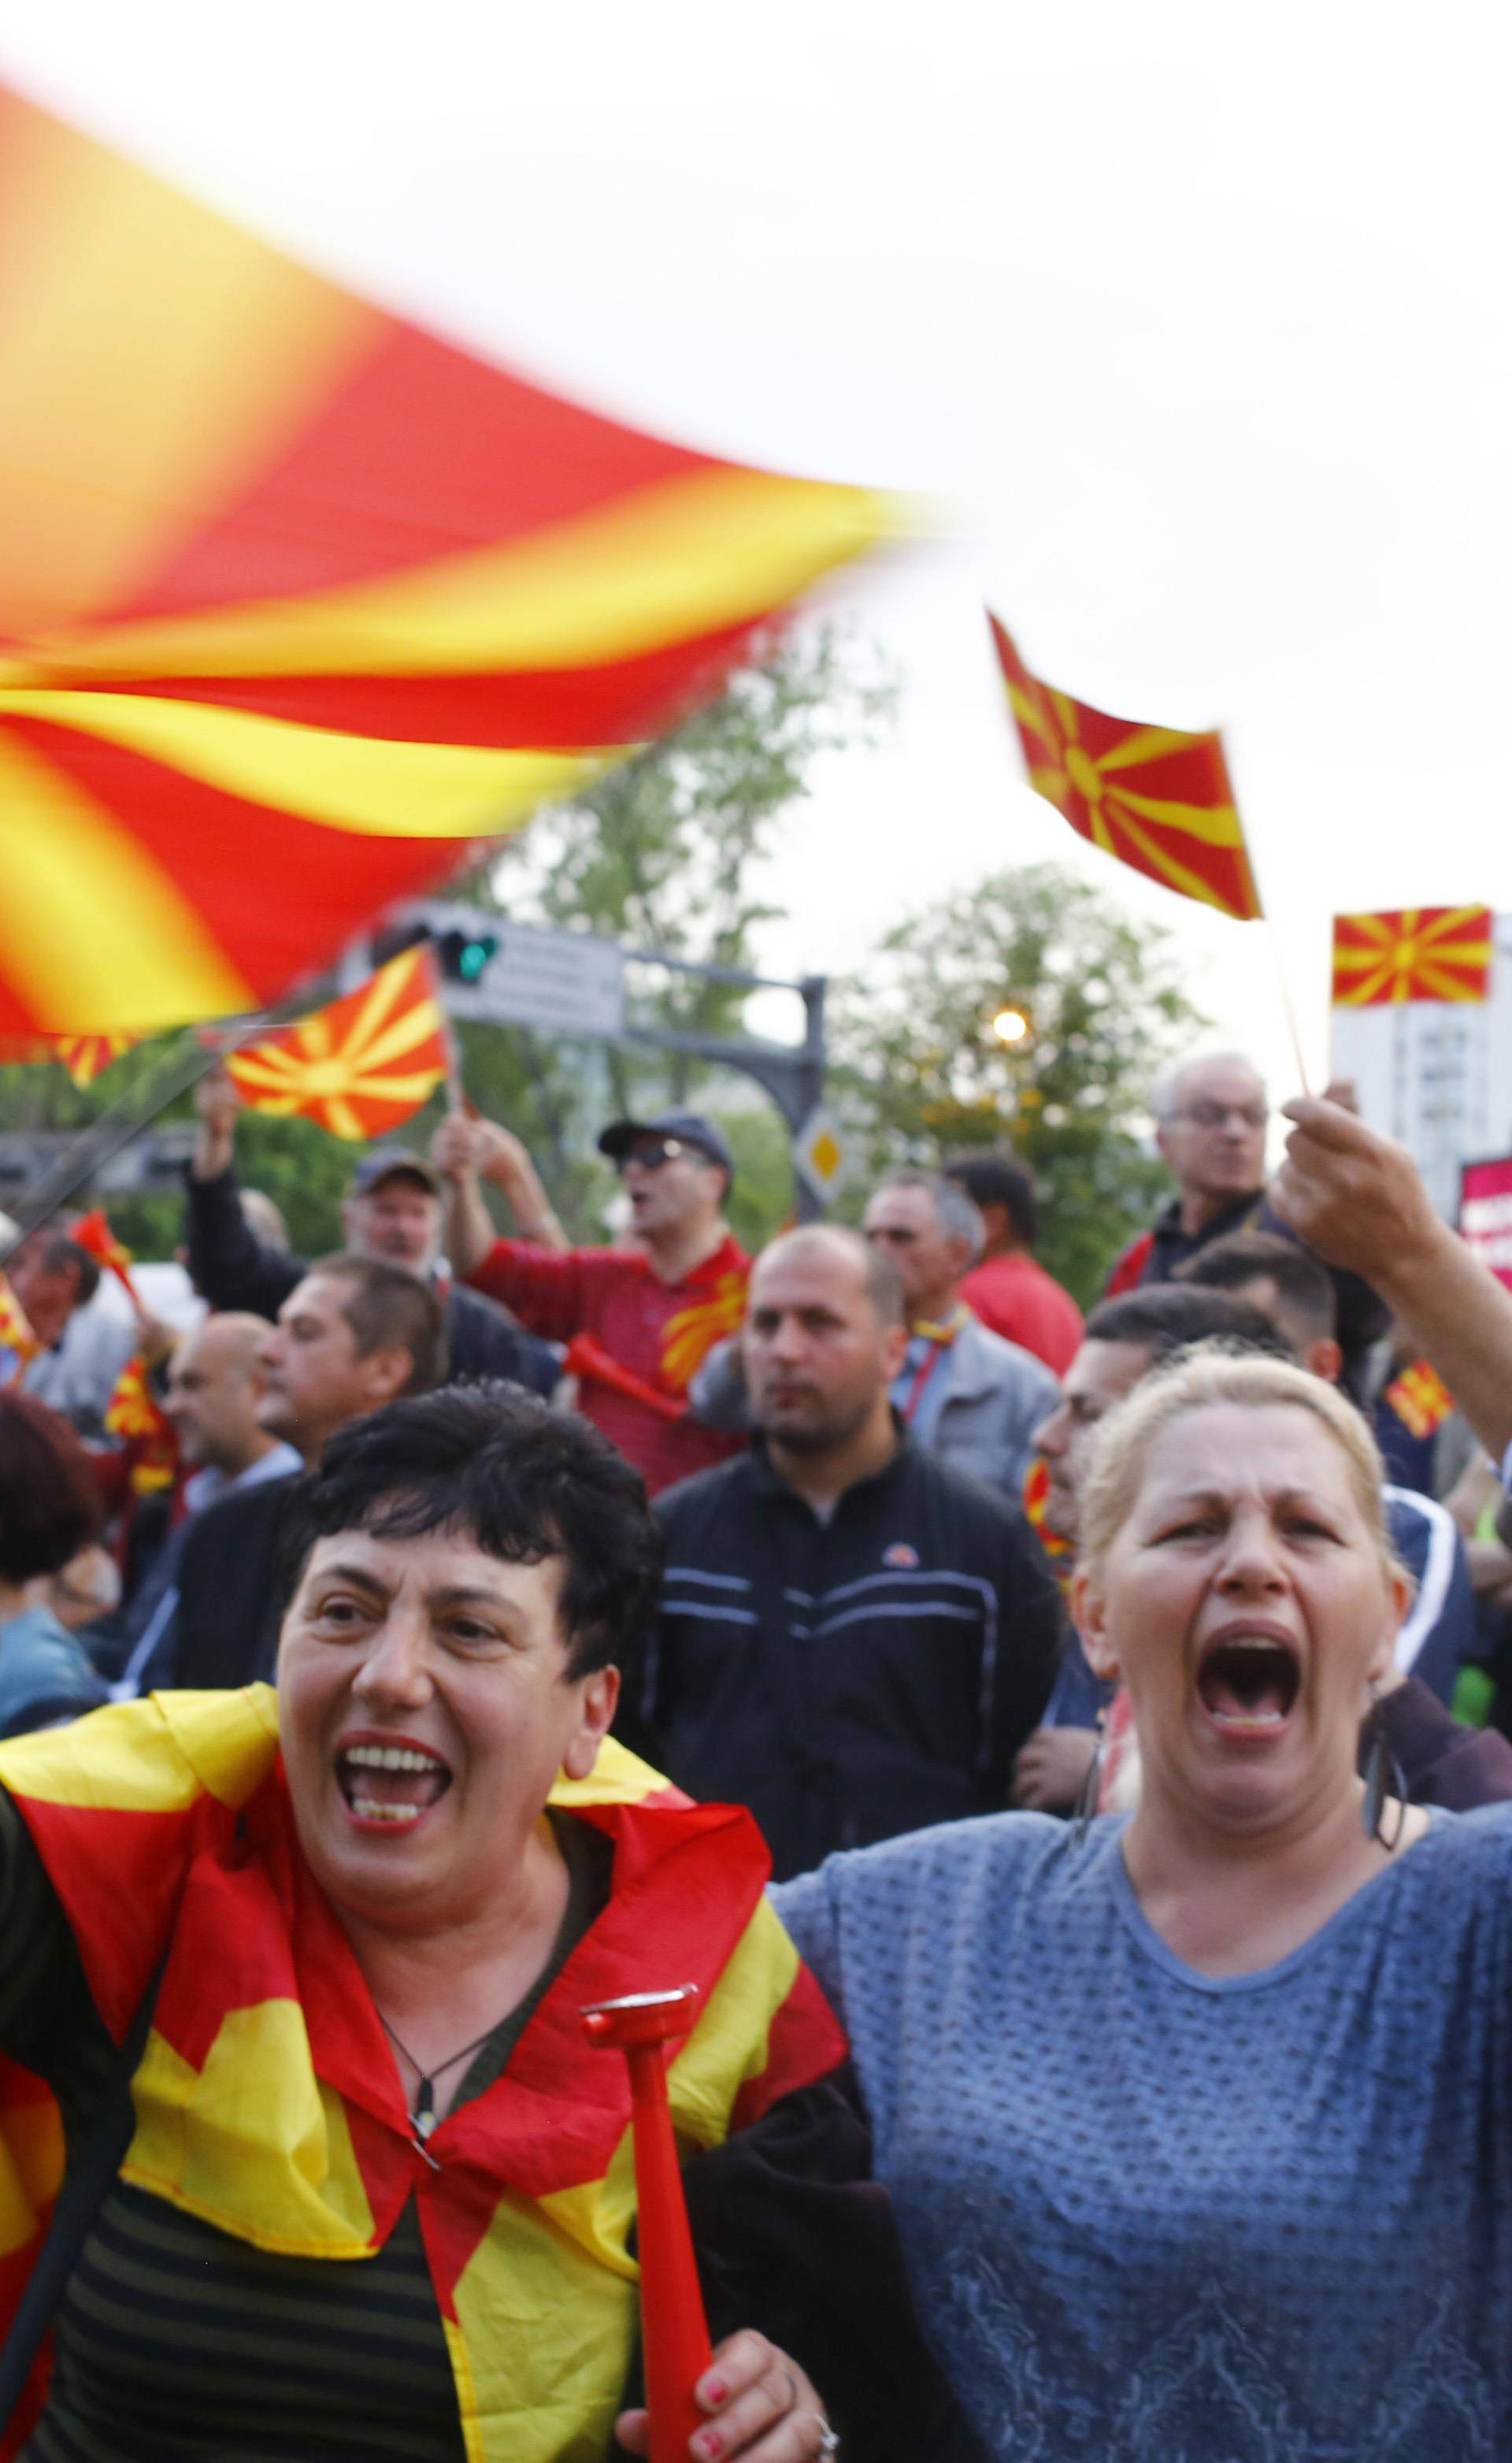 Protesters demonstrate in front of the EU Info Center building in Skopje